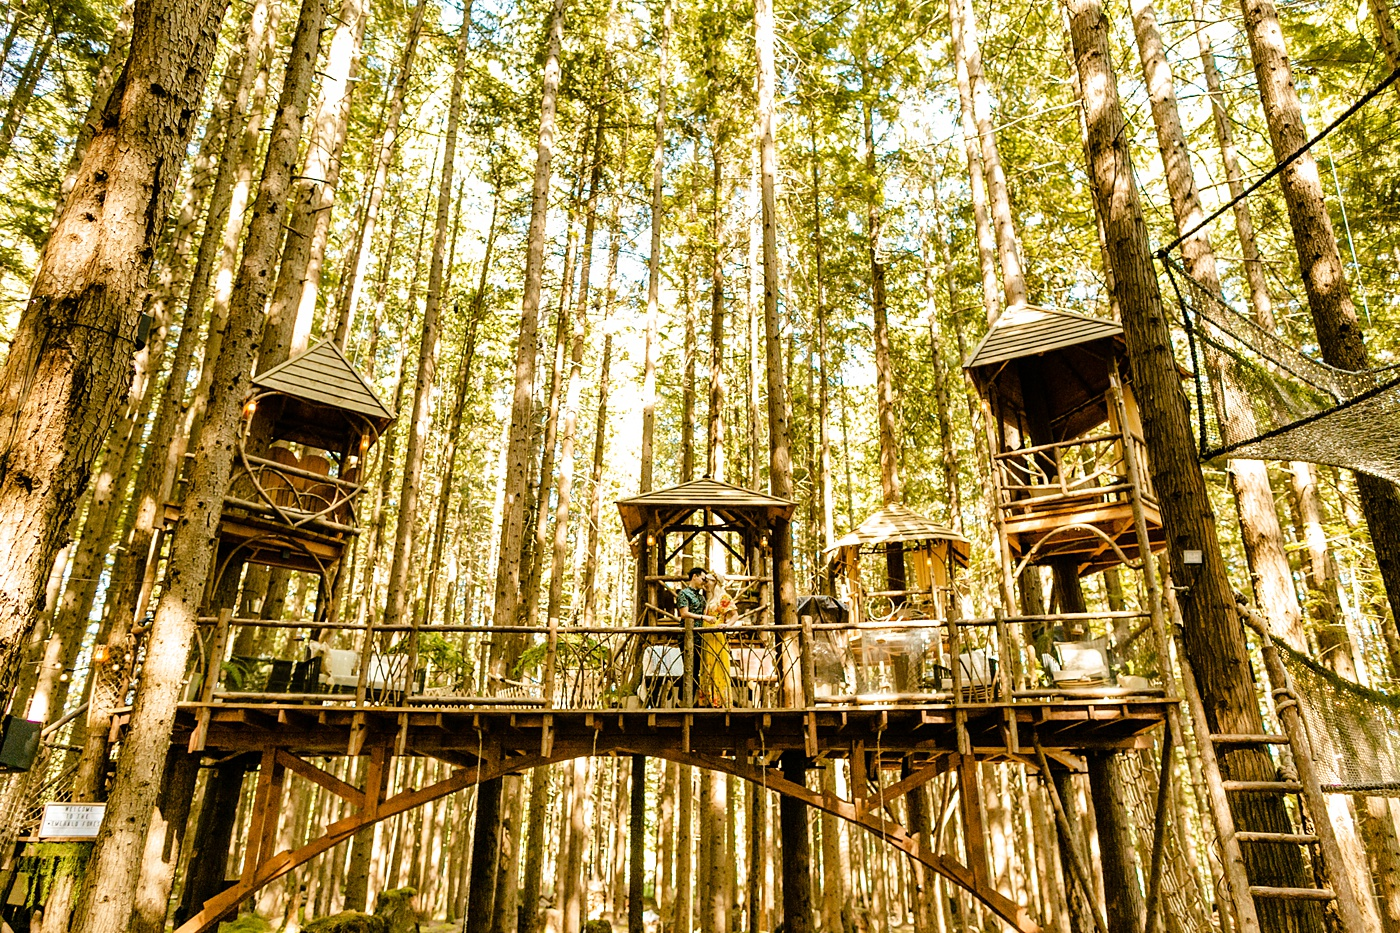 treehouse theater in the forest